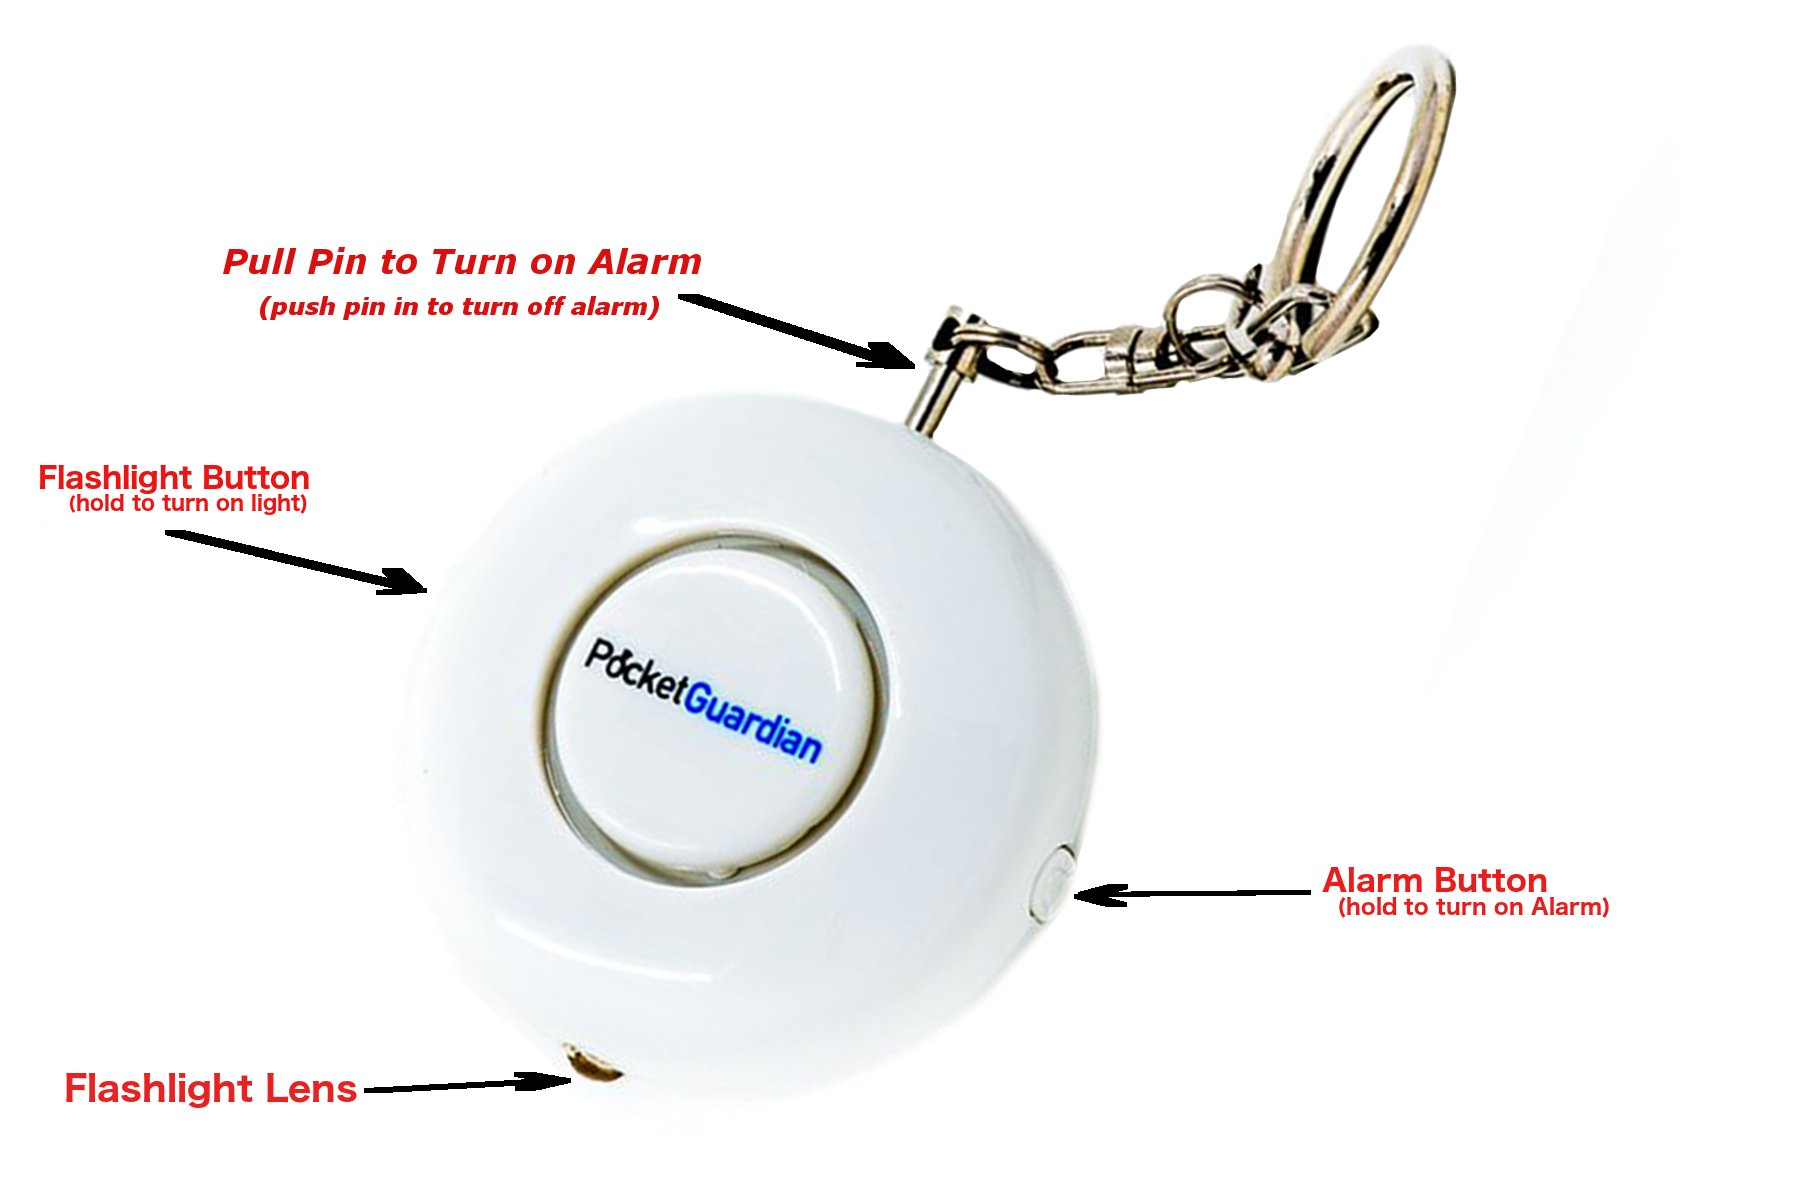 Pocket Guardian Personal Alarm Rape Whistle Attack Prevention Device with Flashlight (White) by Z9 Brands (Image #5)